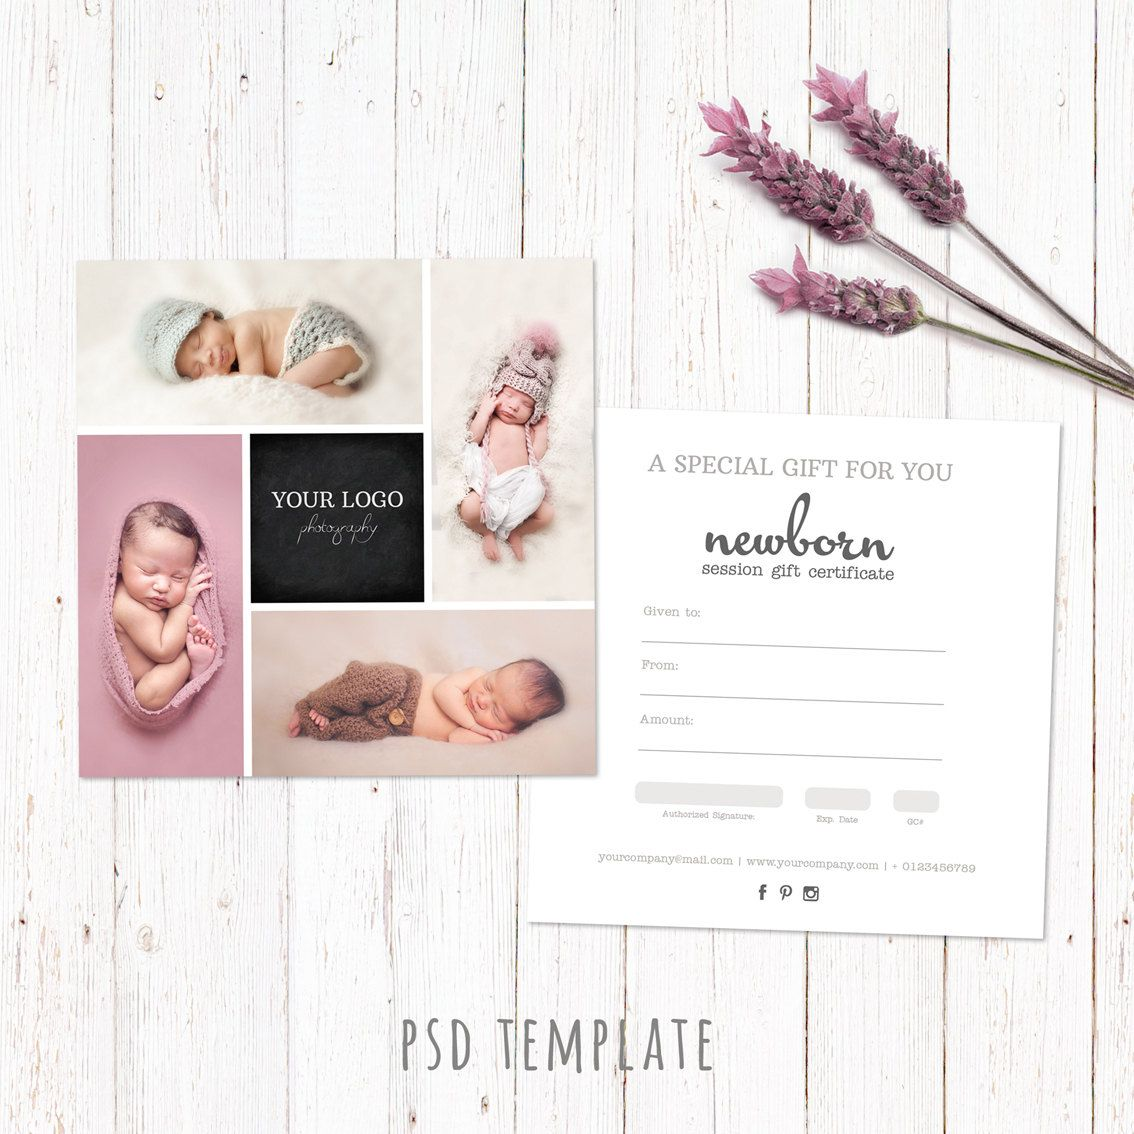 Gift certificate template newborn session photography gift card gift certificate template newborn session photography gift card marketing voucher card fully editable yadclub Image collections